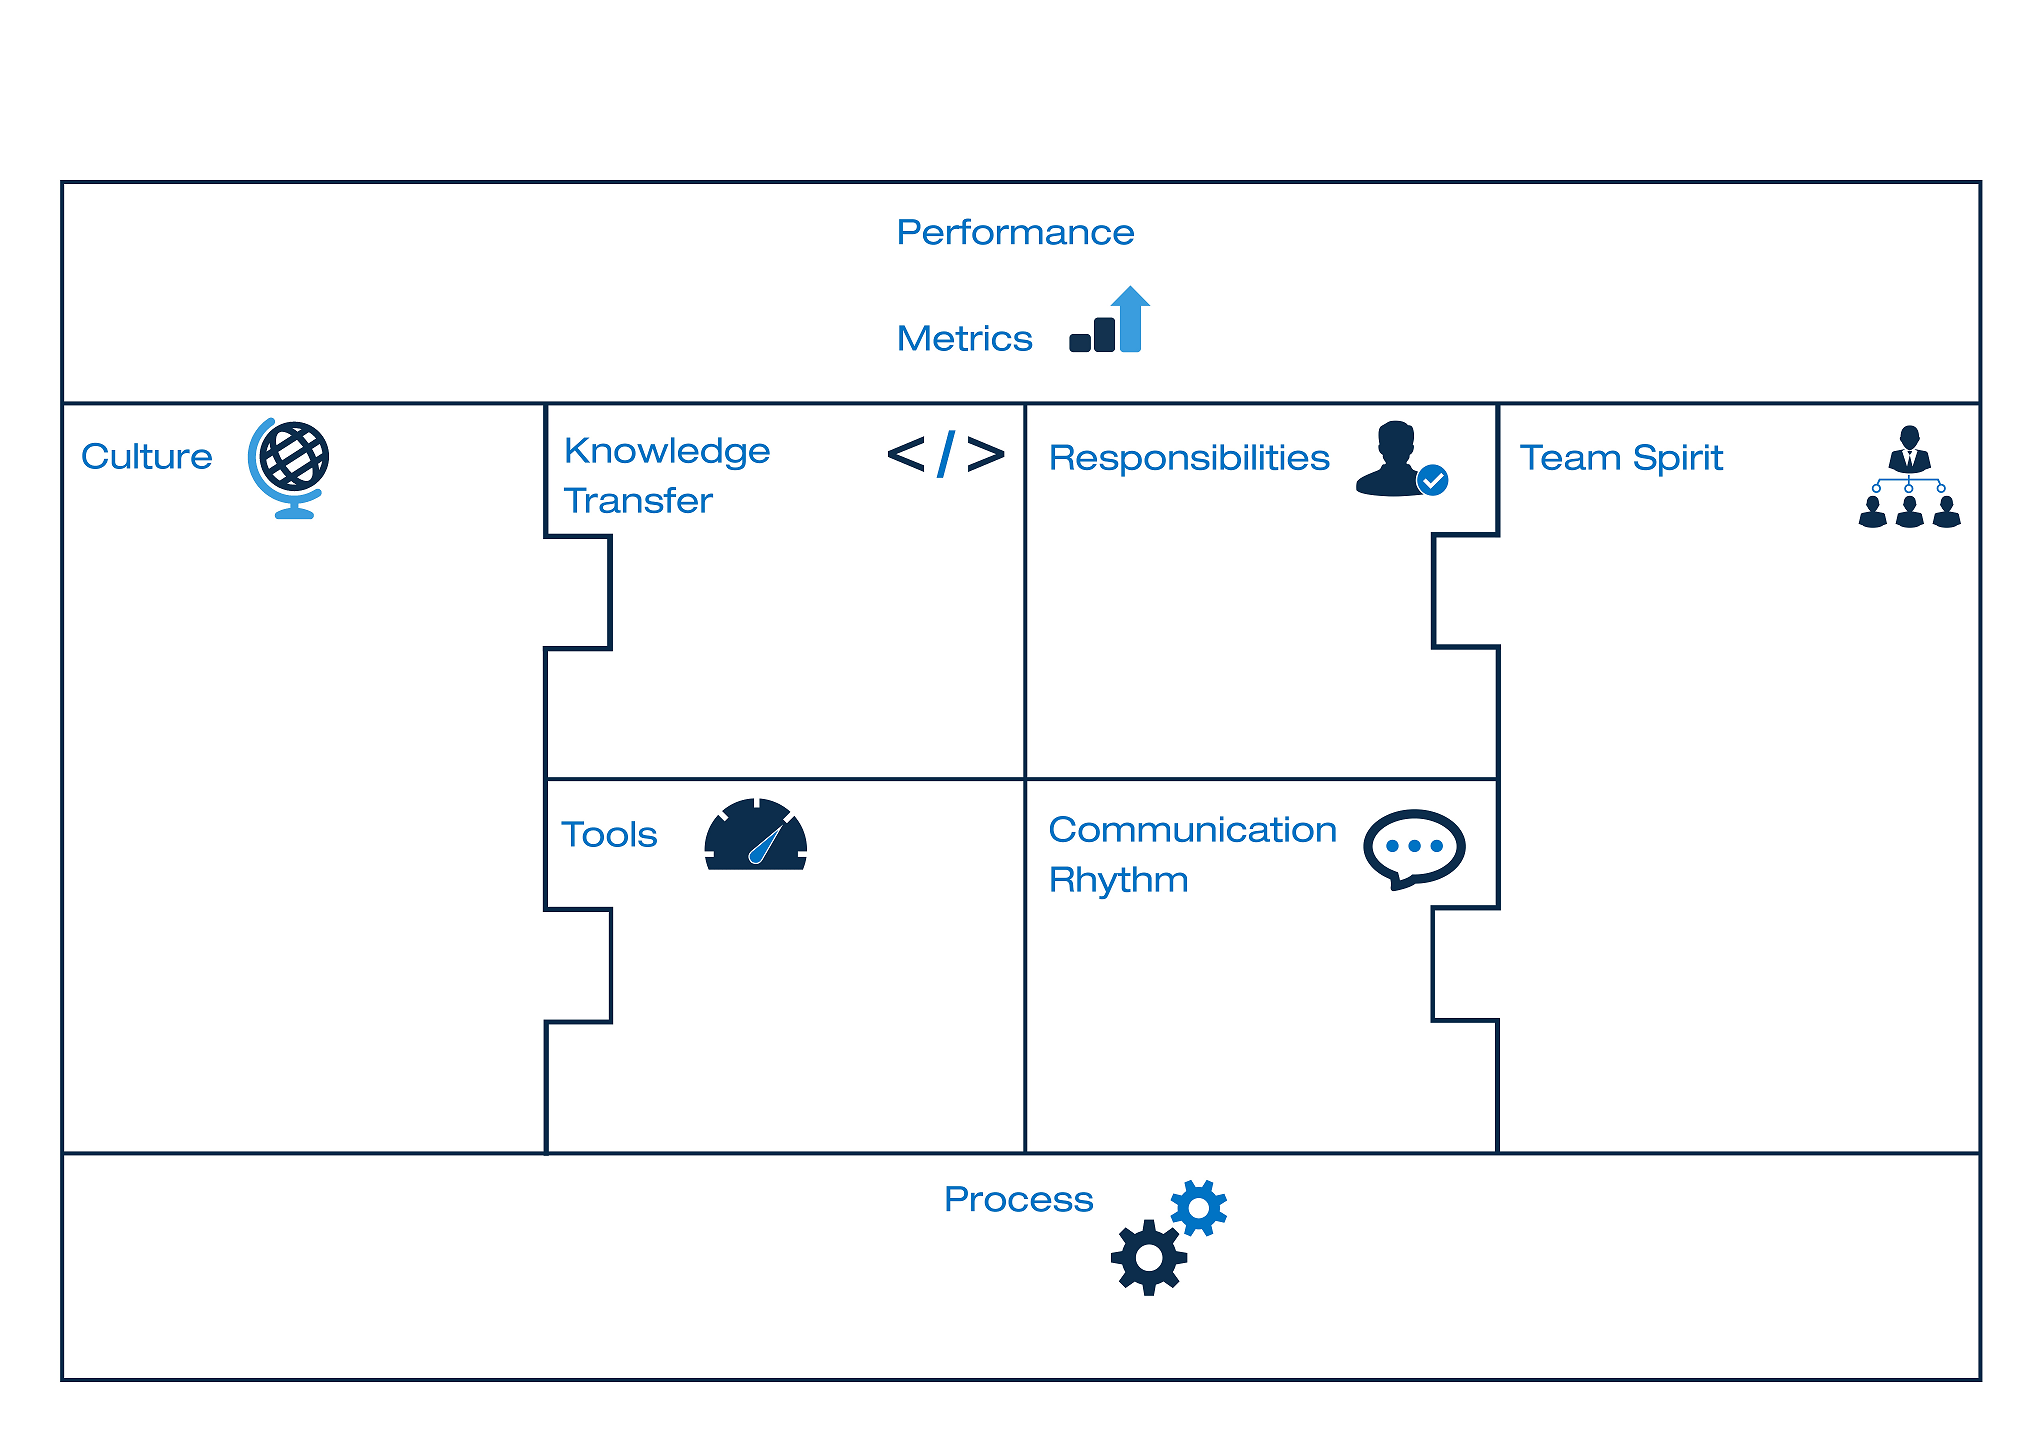 The distributed canvas shows the 8 building blocks of succesful distributed teams